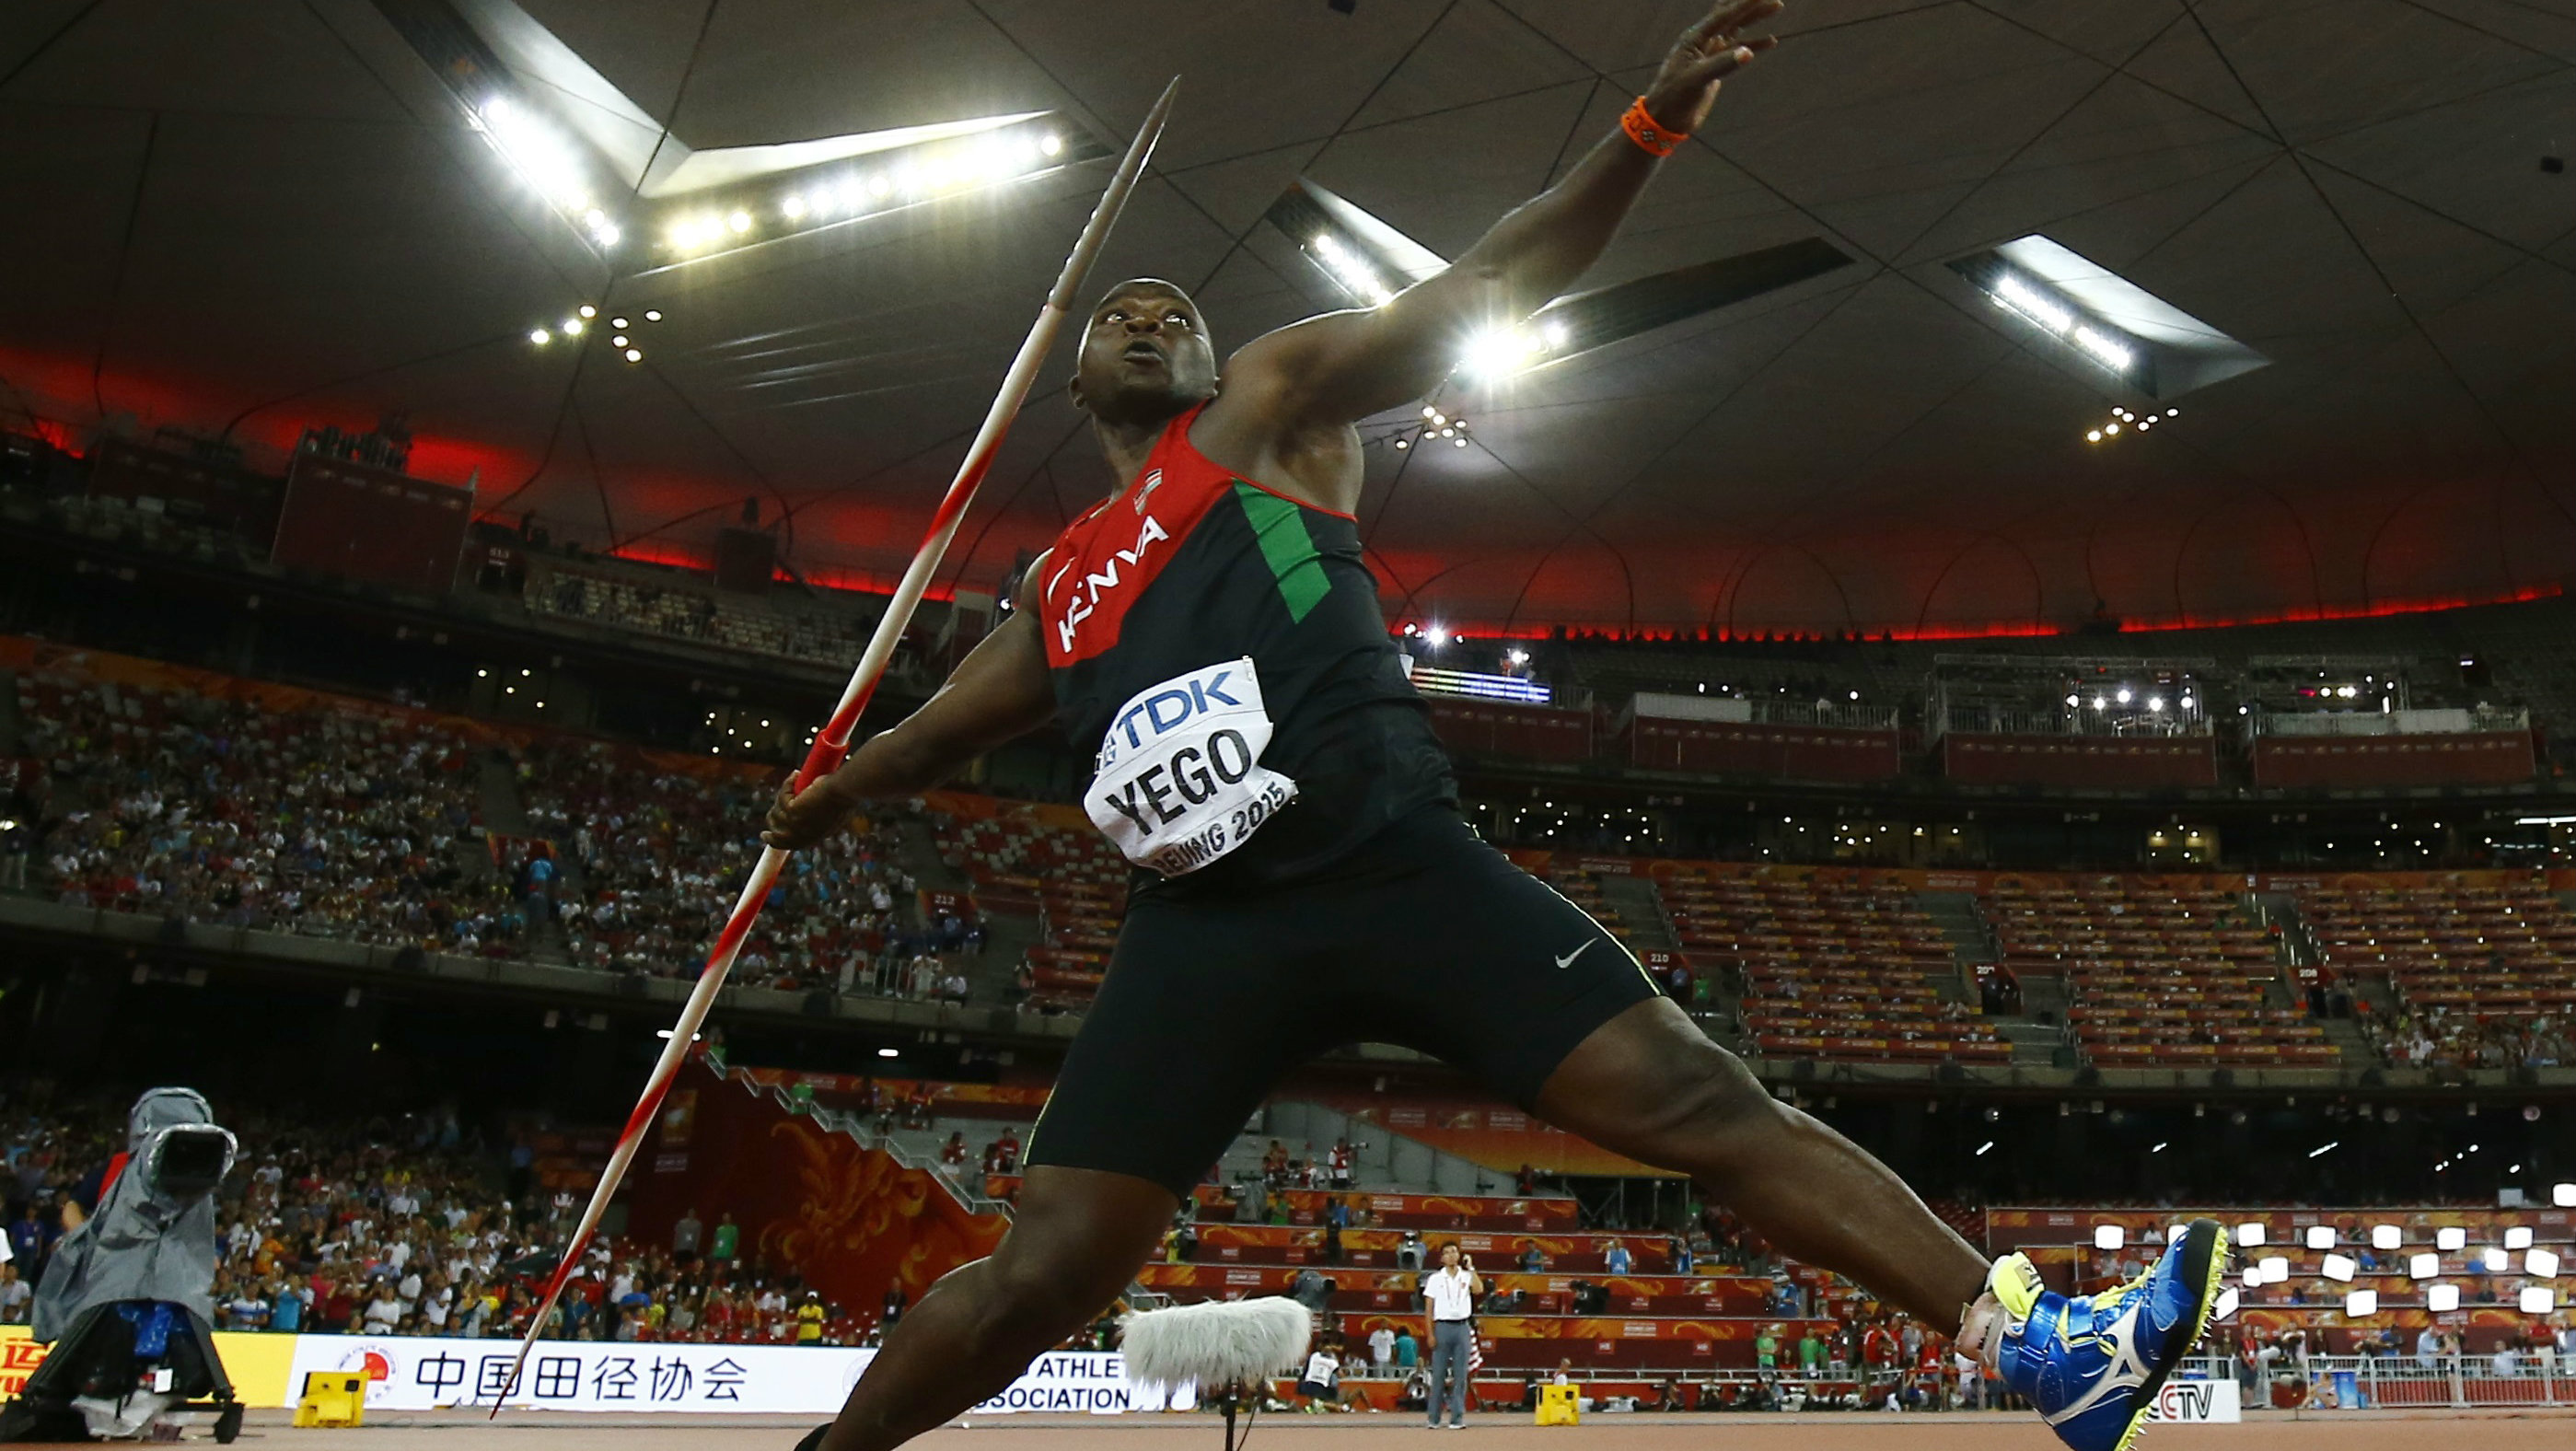 Julius Yego of Kenya competes at the men's javelin throw final during the 15th IAAF World Championships at the National Stadium in Beijing, China, August 26, 2015. REUTERS/Kai Pfaffenbach